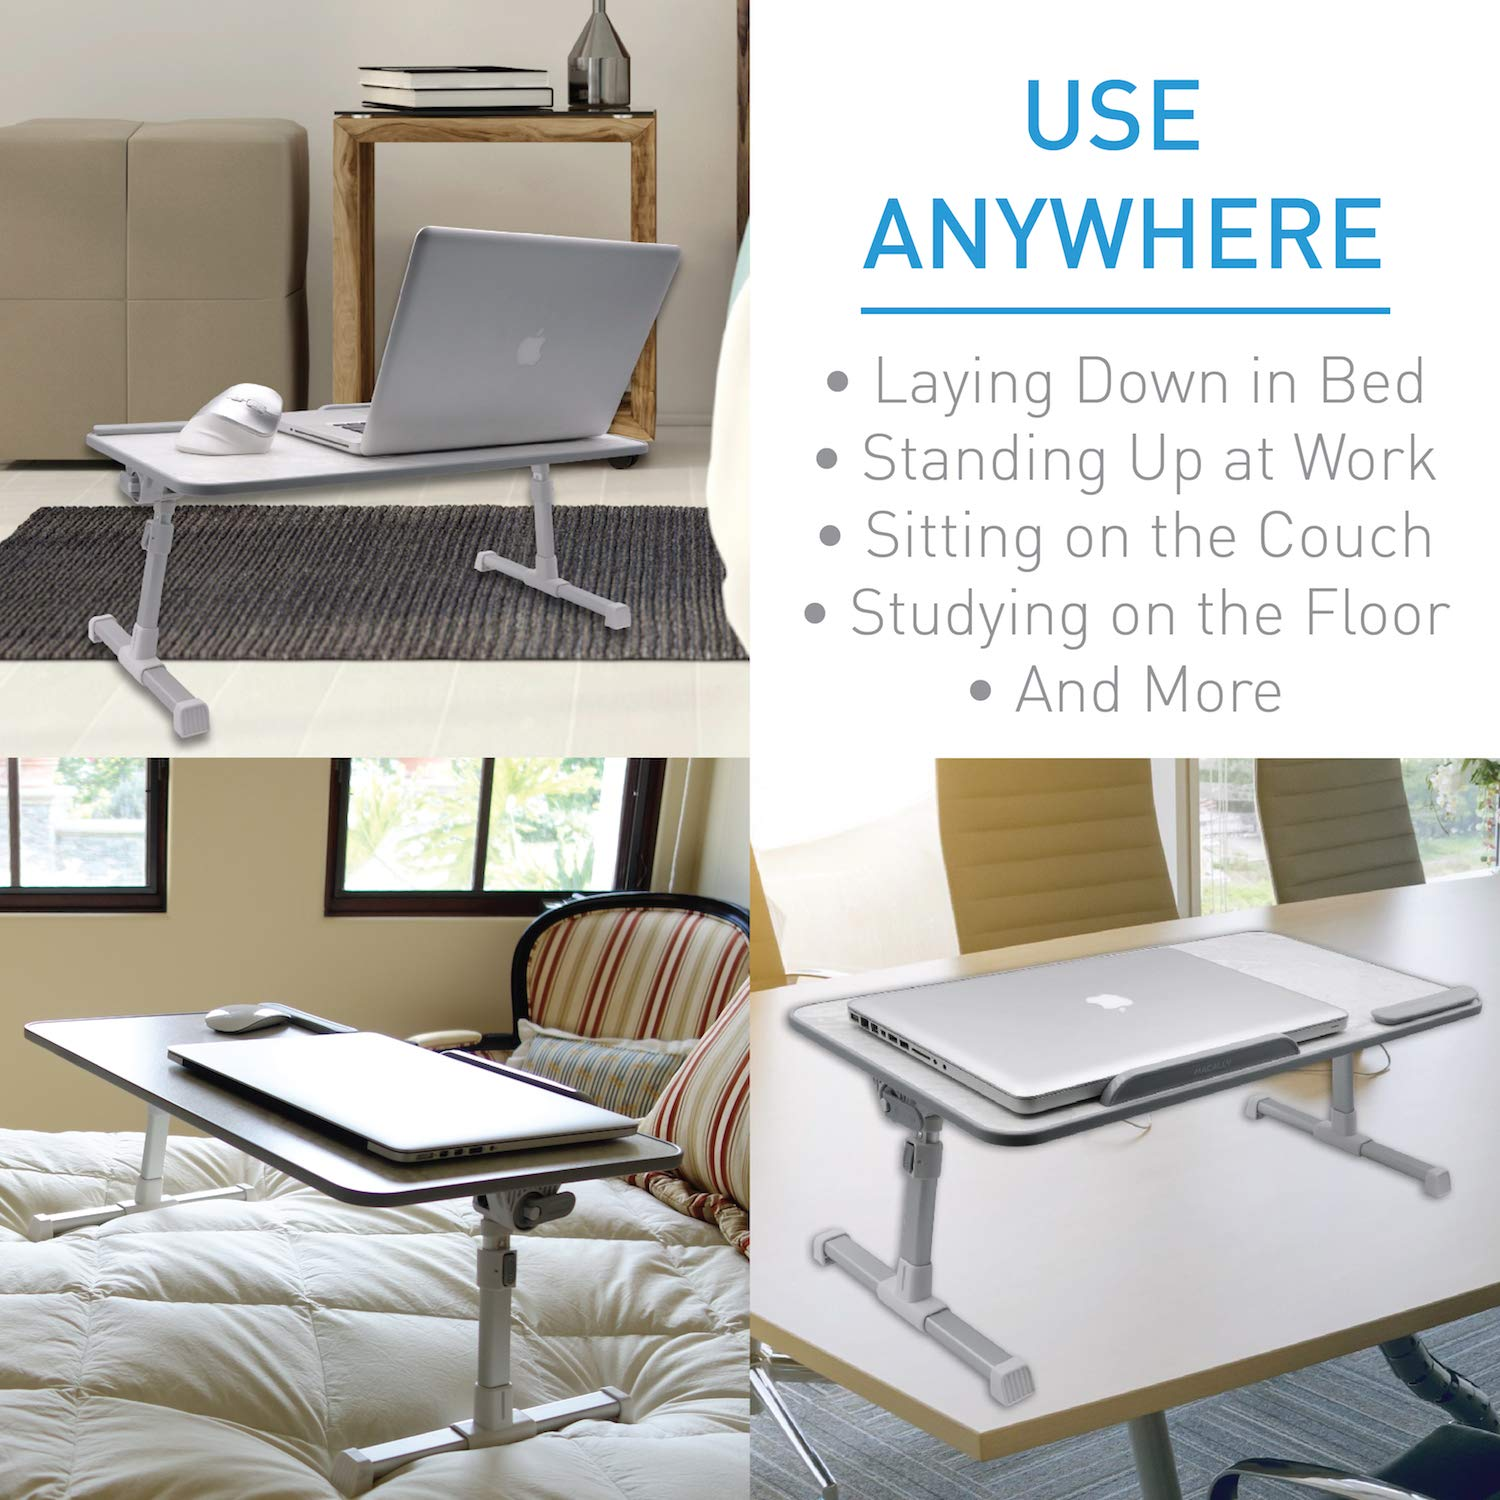 Macally Portable Laptop Table for Bed, [Large Size] Foldable & Height Adjustable Laptop Stand for Table - Sofa, Couch, Recliner - Folding Breakfast Tray Table with Legs, Notebook Lap Holder (Marble) by Macally (Image #2)